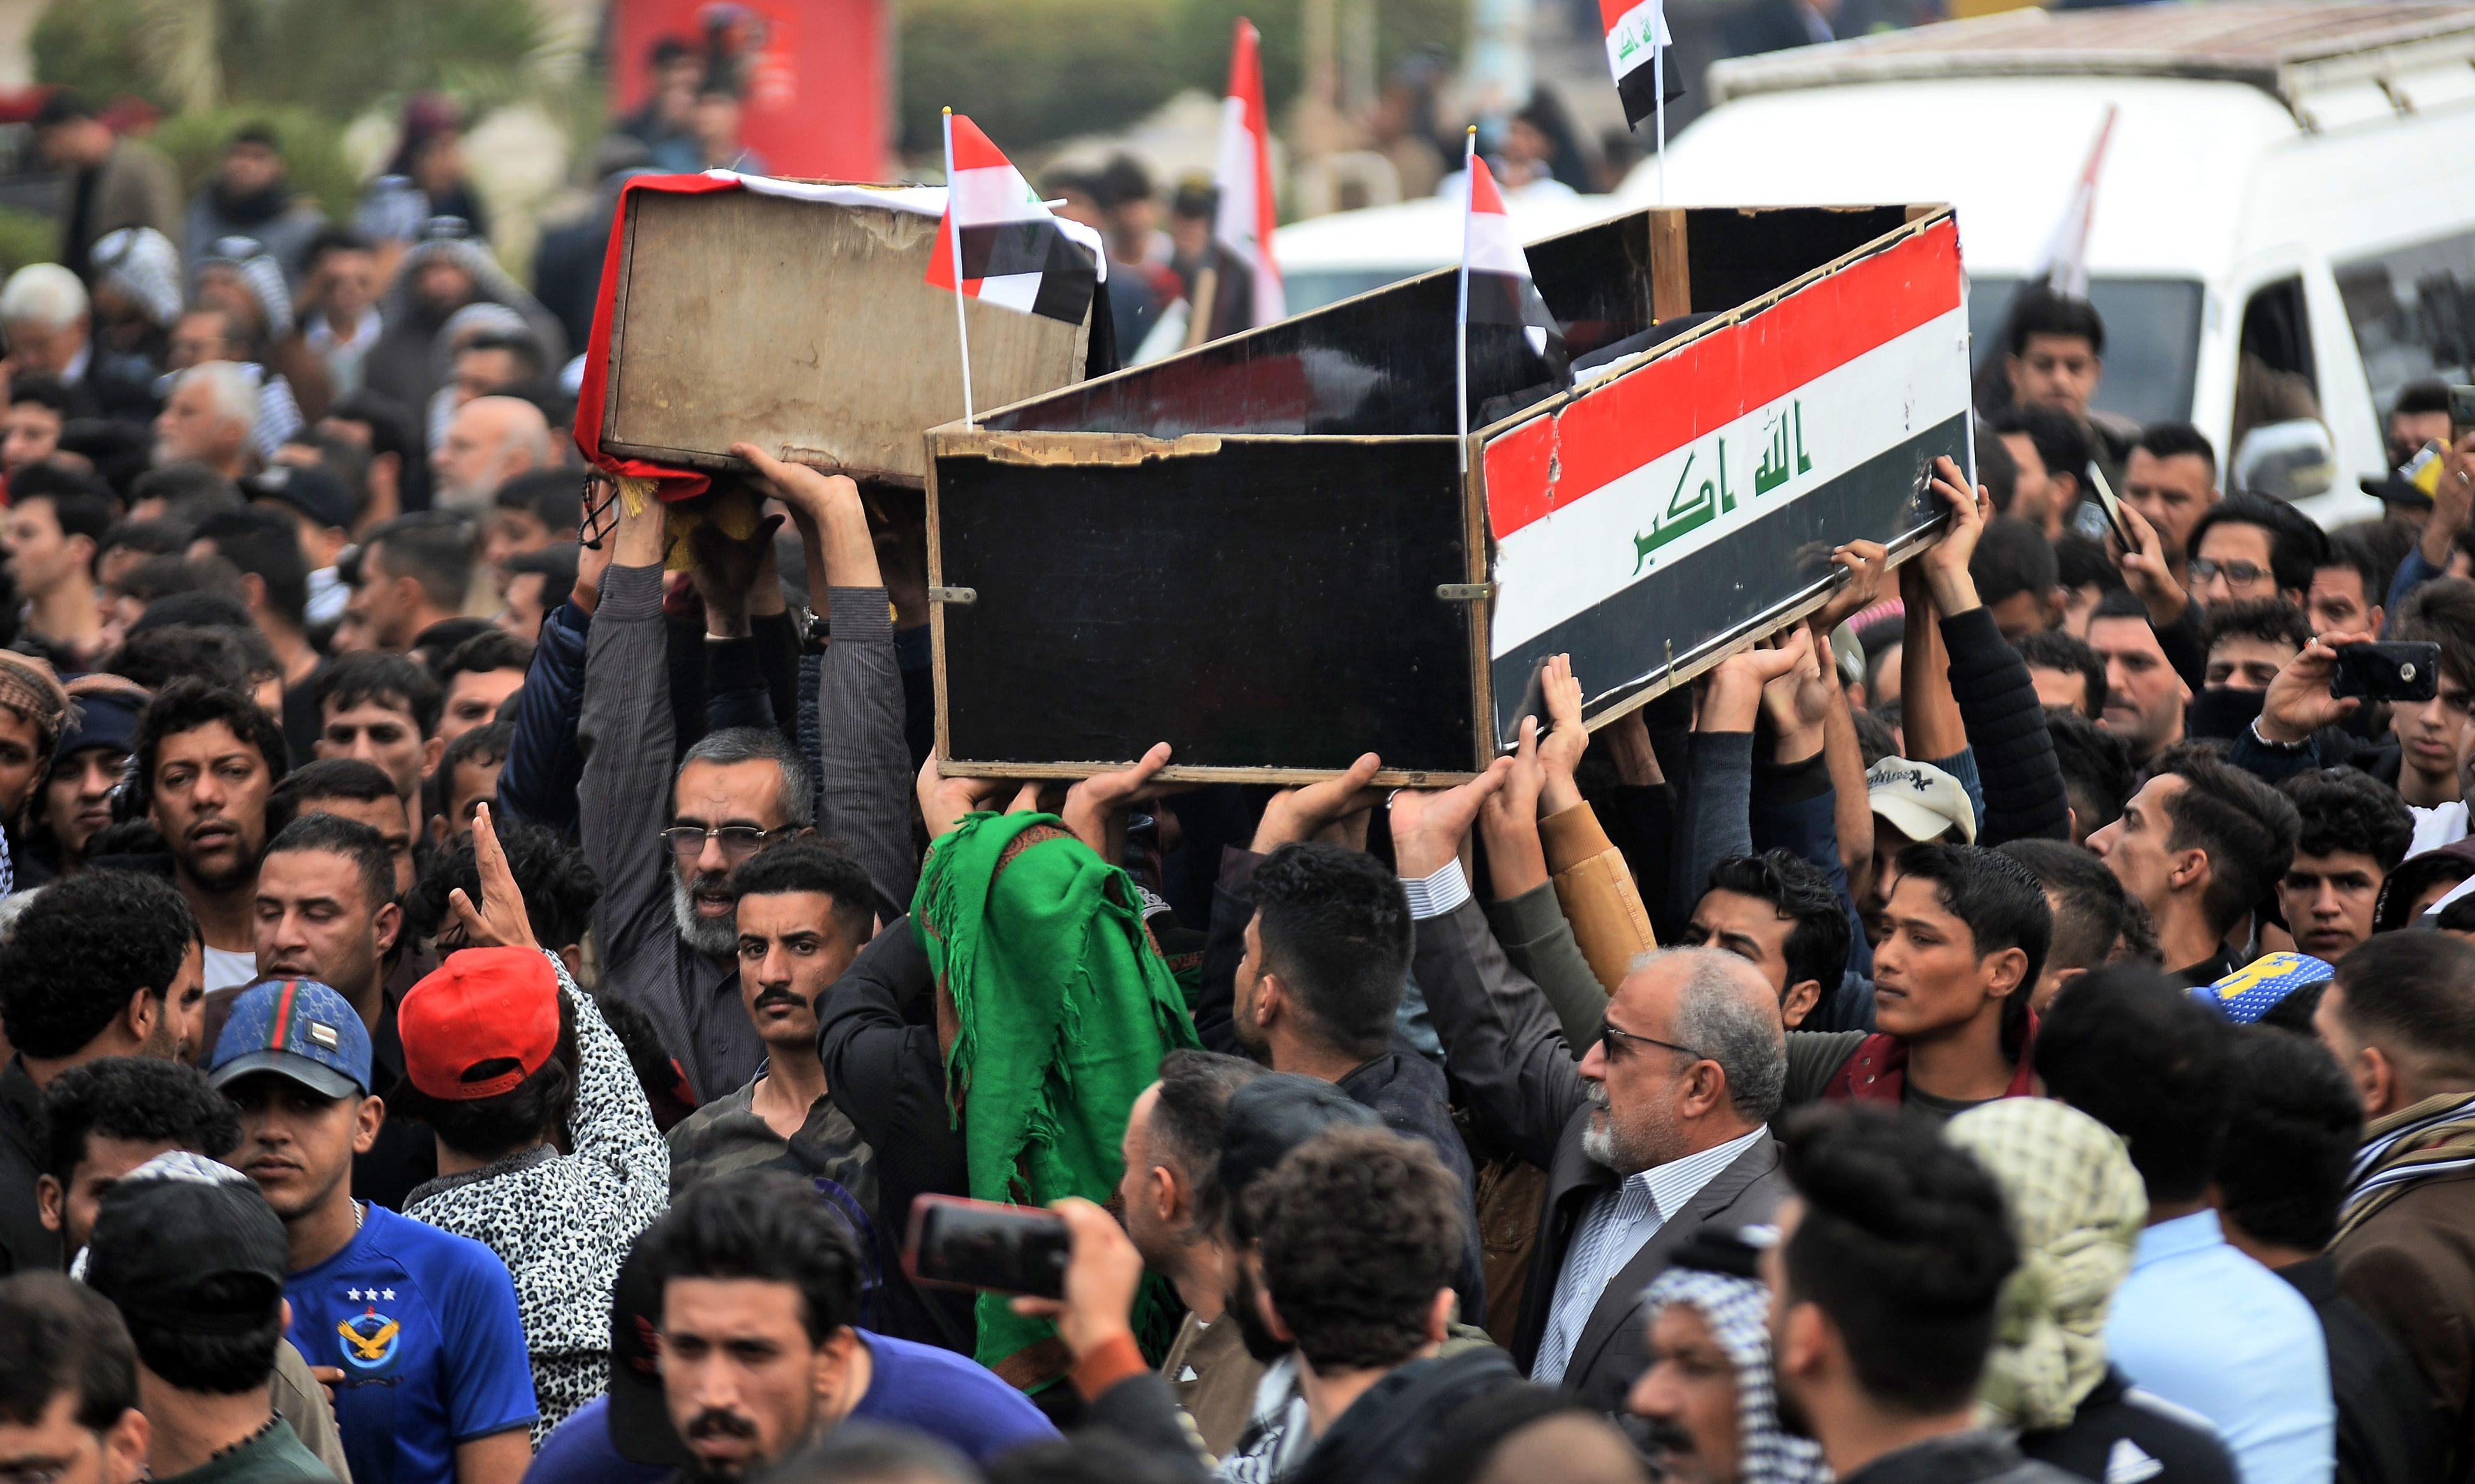 Iraqi PM says he will resign after weeks of violent protests